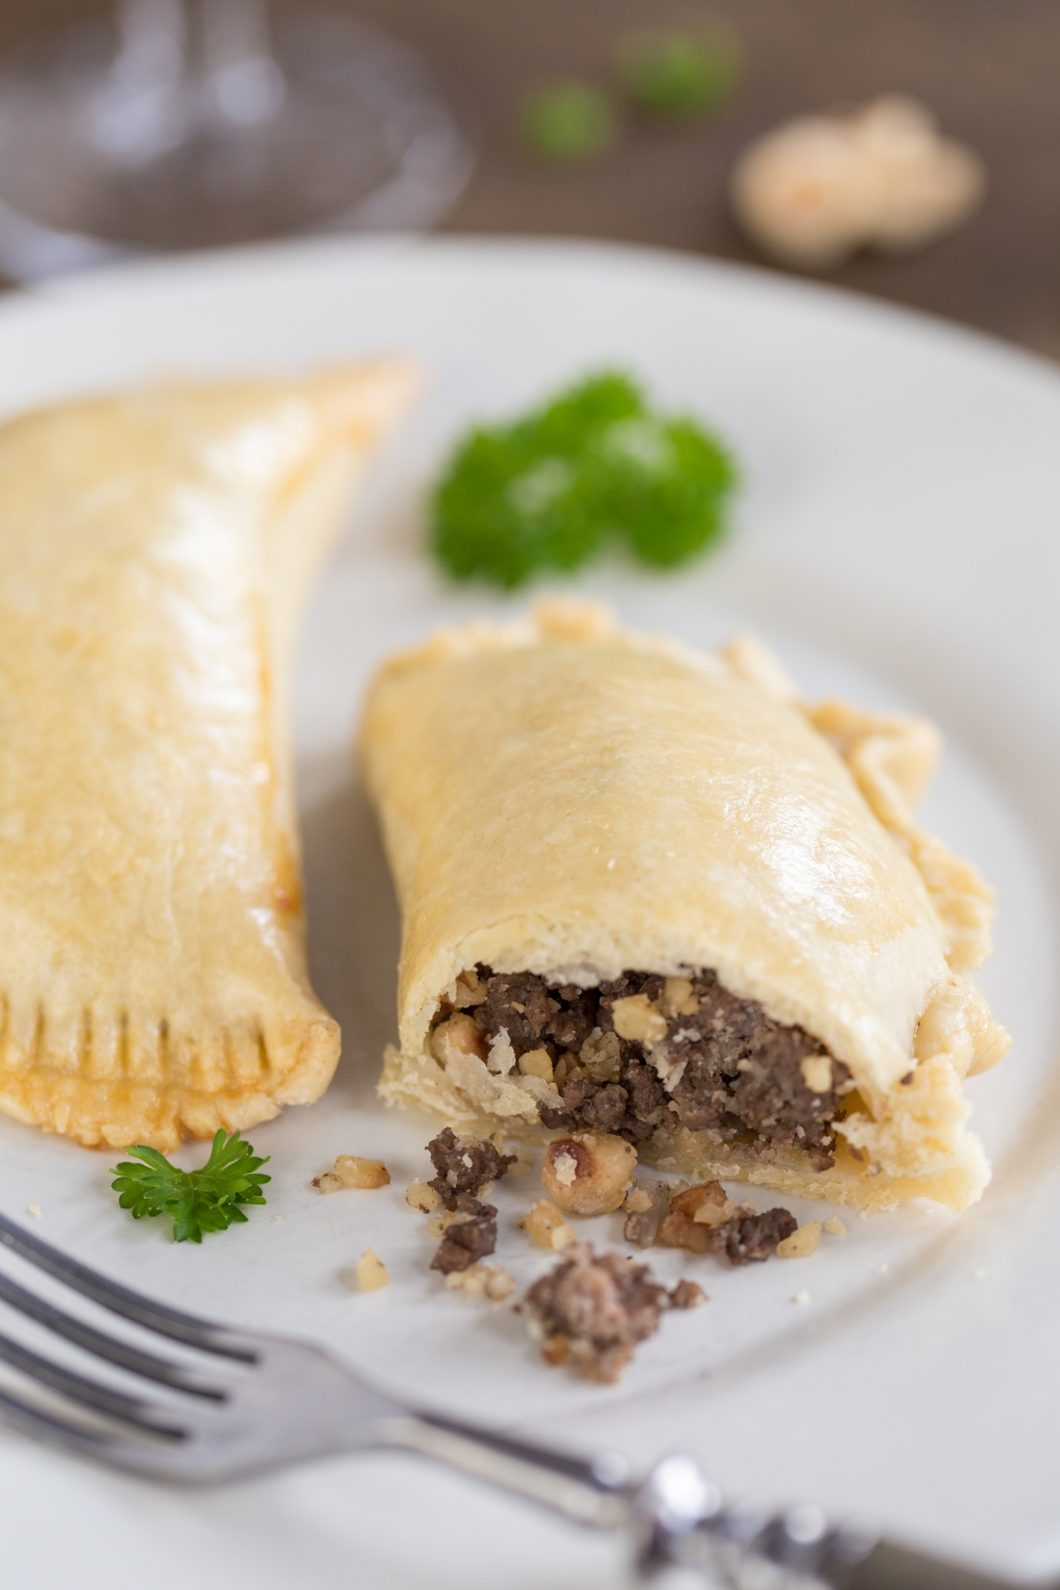 Homemade empanadas with venison and hazelnut filling, with filling coming out.